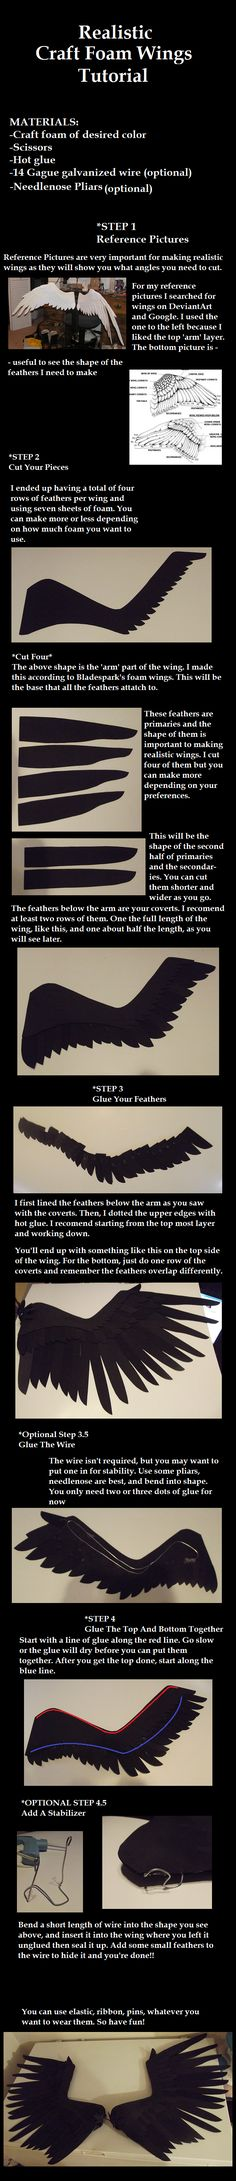 LOVE! I will so this! #Gothic #Costume #Wings #Tutorial